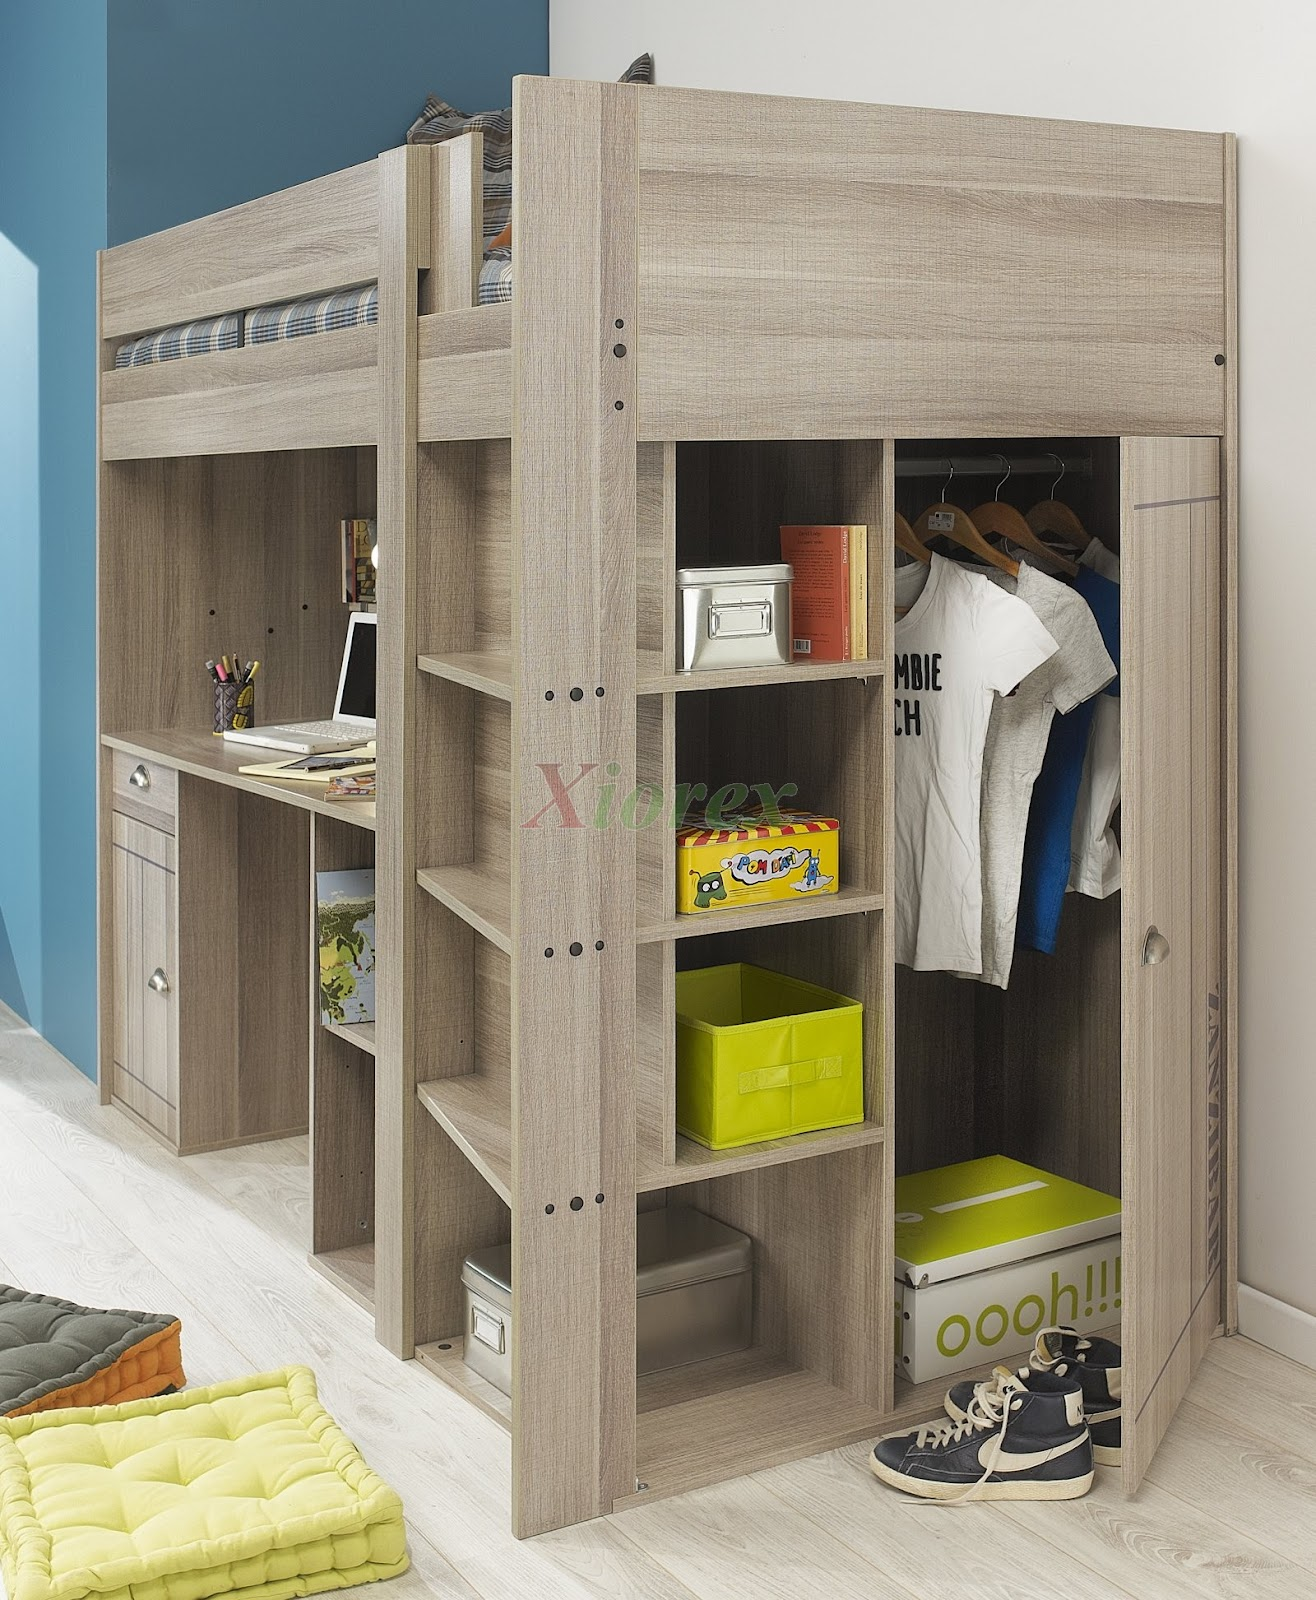 Use Space Under the Bed as a Closet